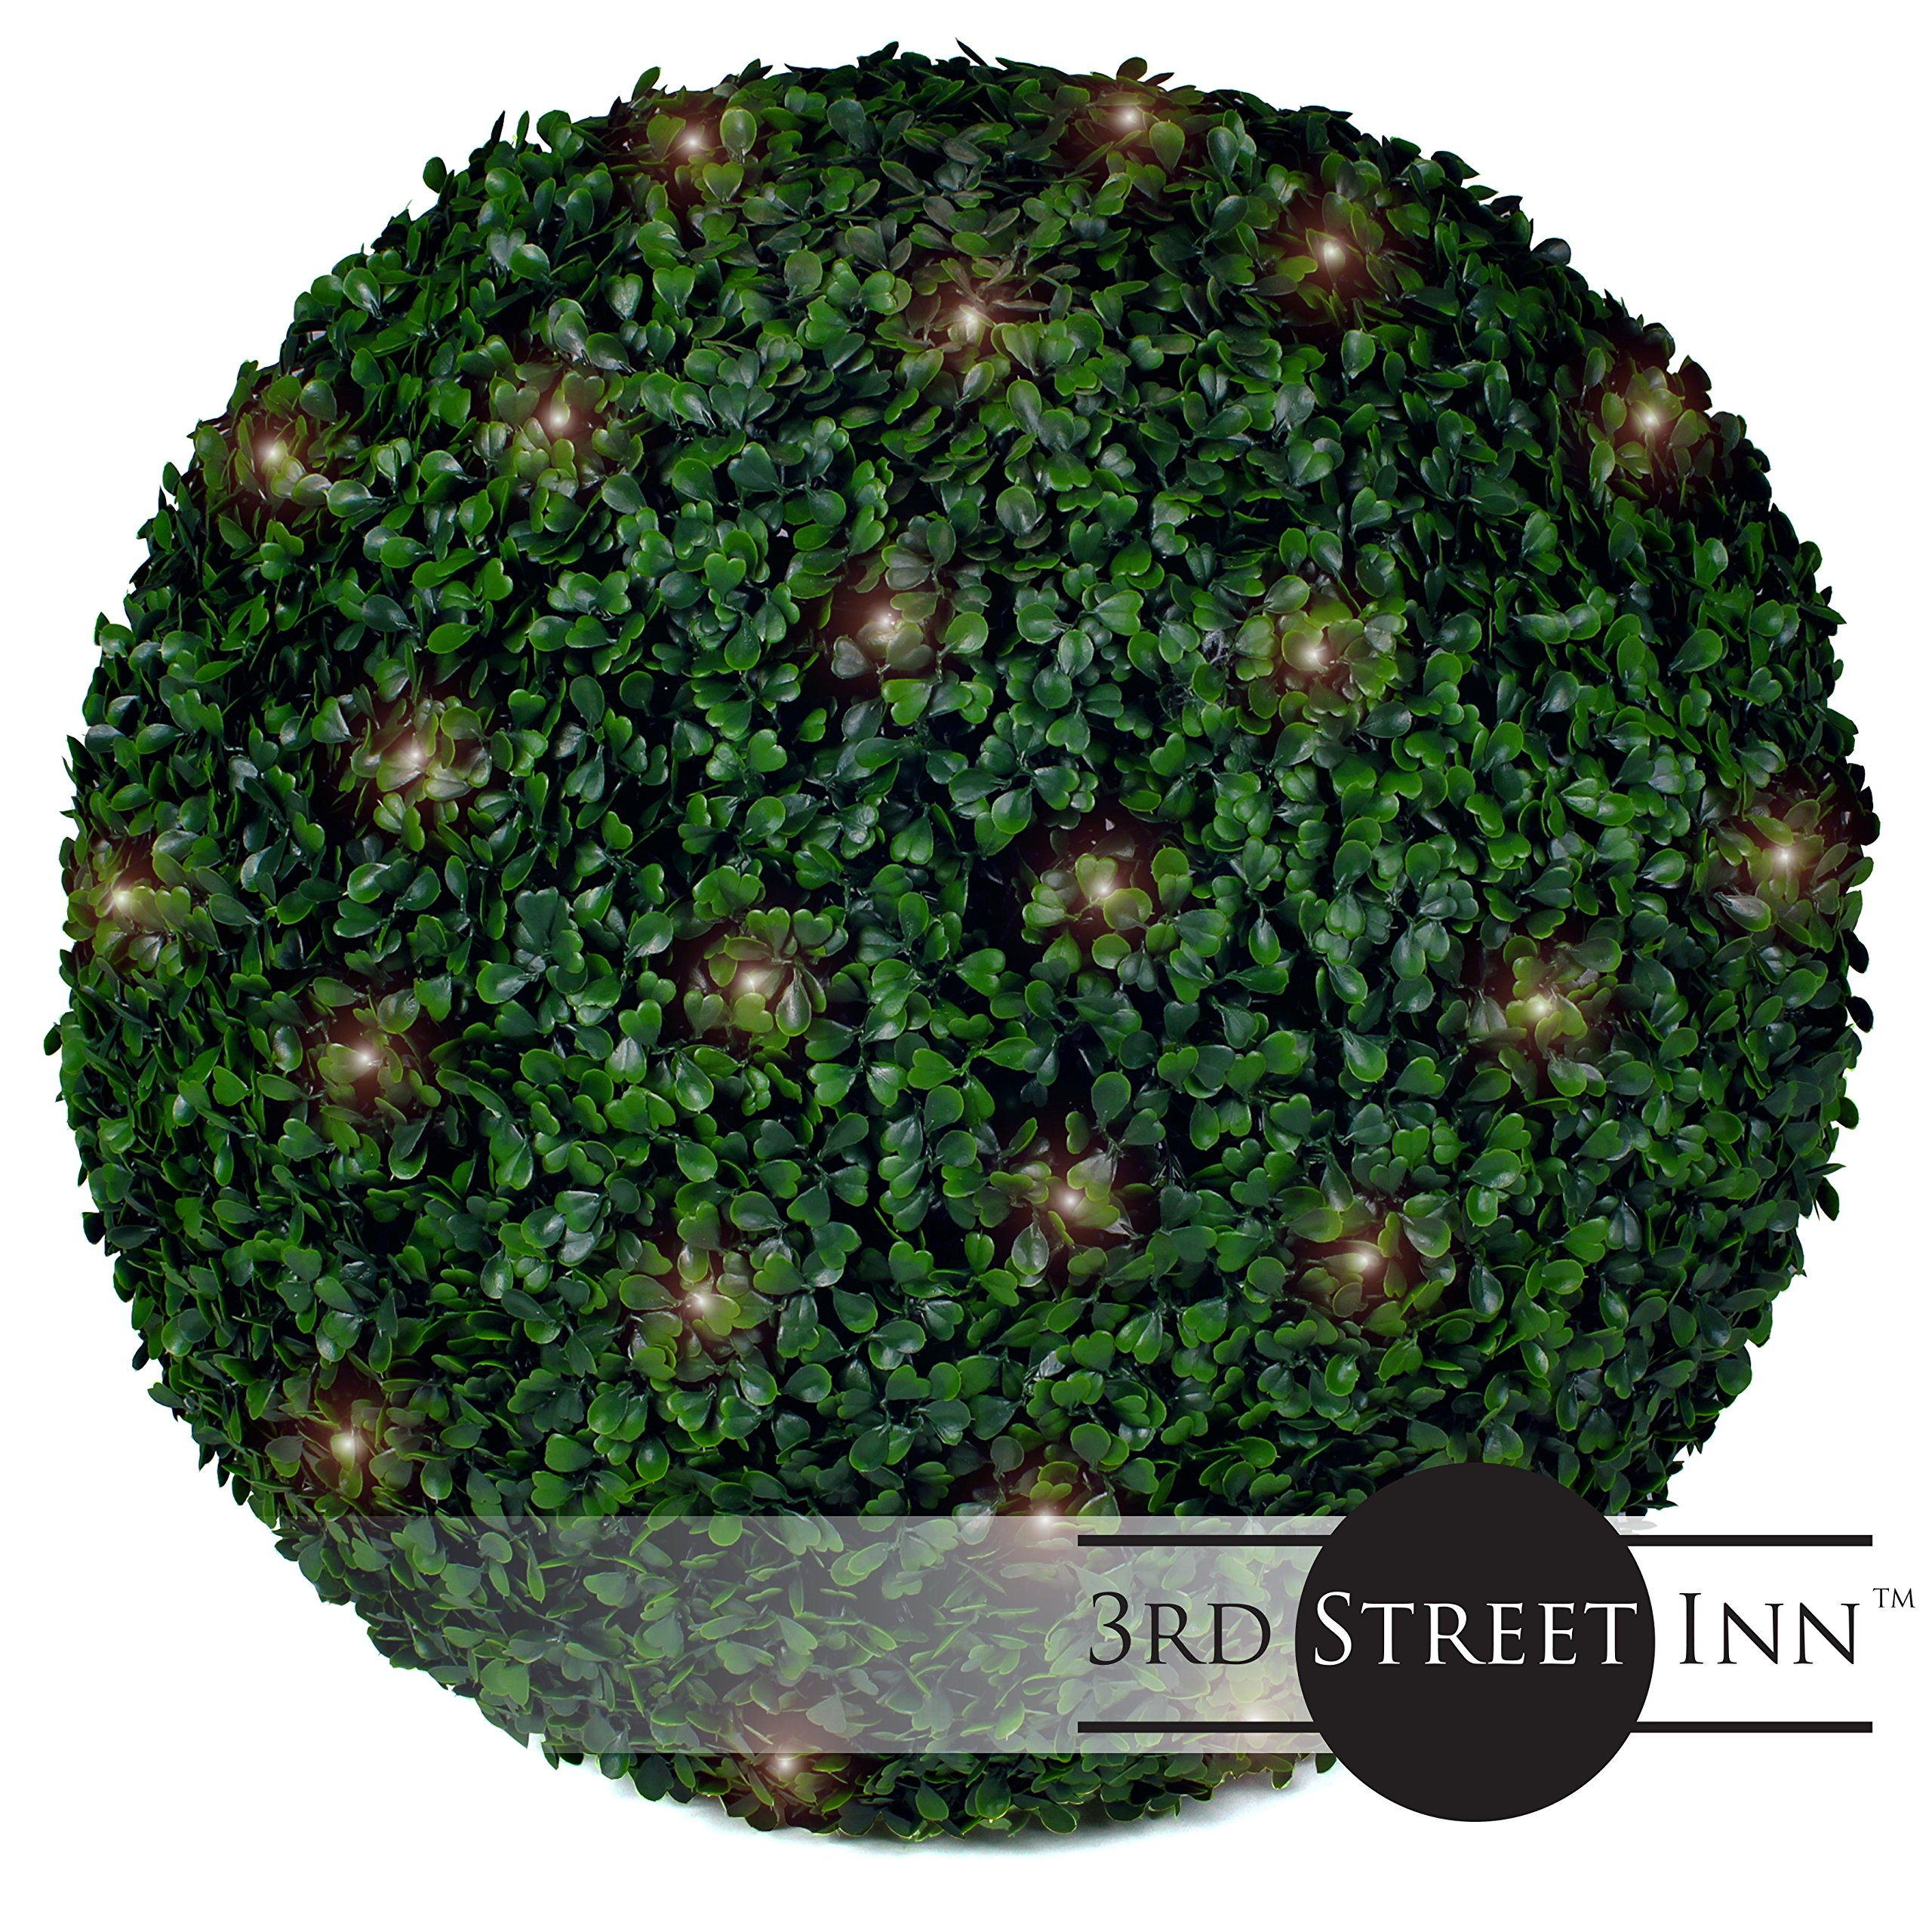 Boxwood Lighted Topiary Ball - 19'' Artificial Pre-Lit Christmas Topiary Plant - Indoor/Outdoor Decorative Light Plant Ball - Wedding and Holiday Decor (2-Pack)